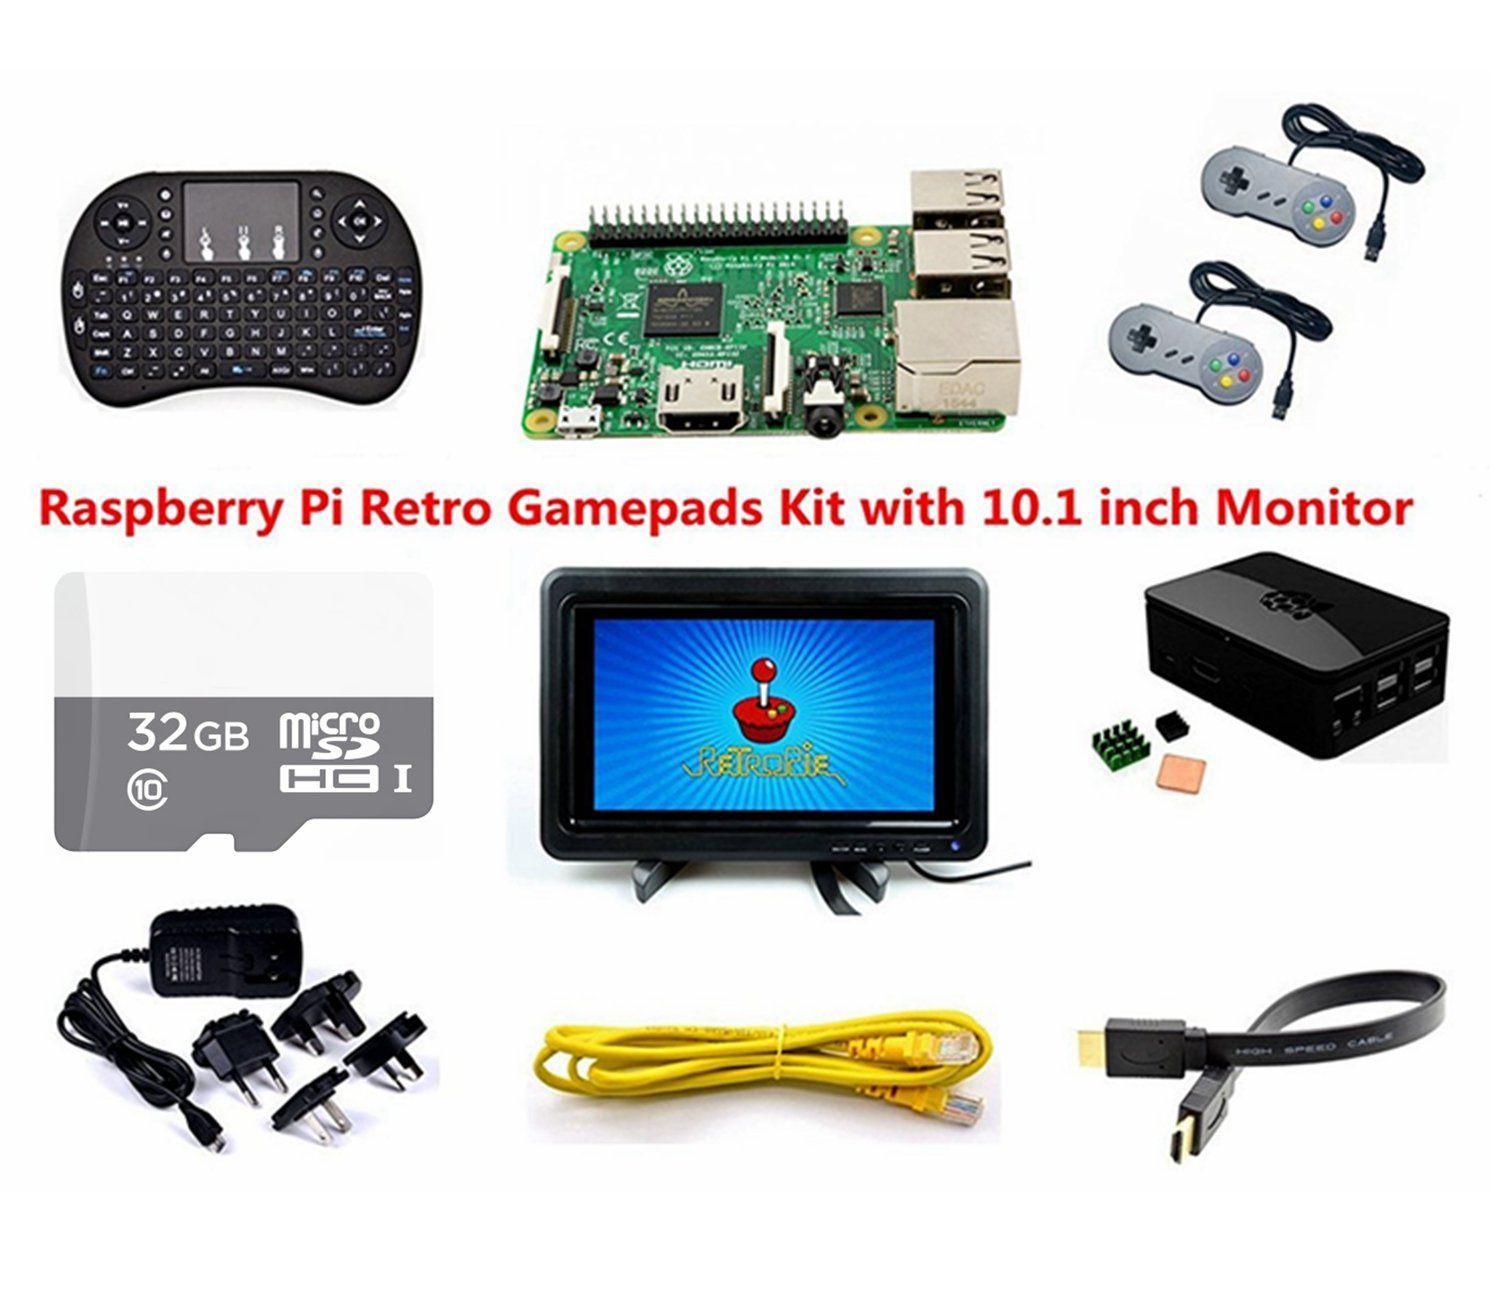 Raspberry Pi Retro Gamepads Kit with 10.1 inch Monitor